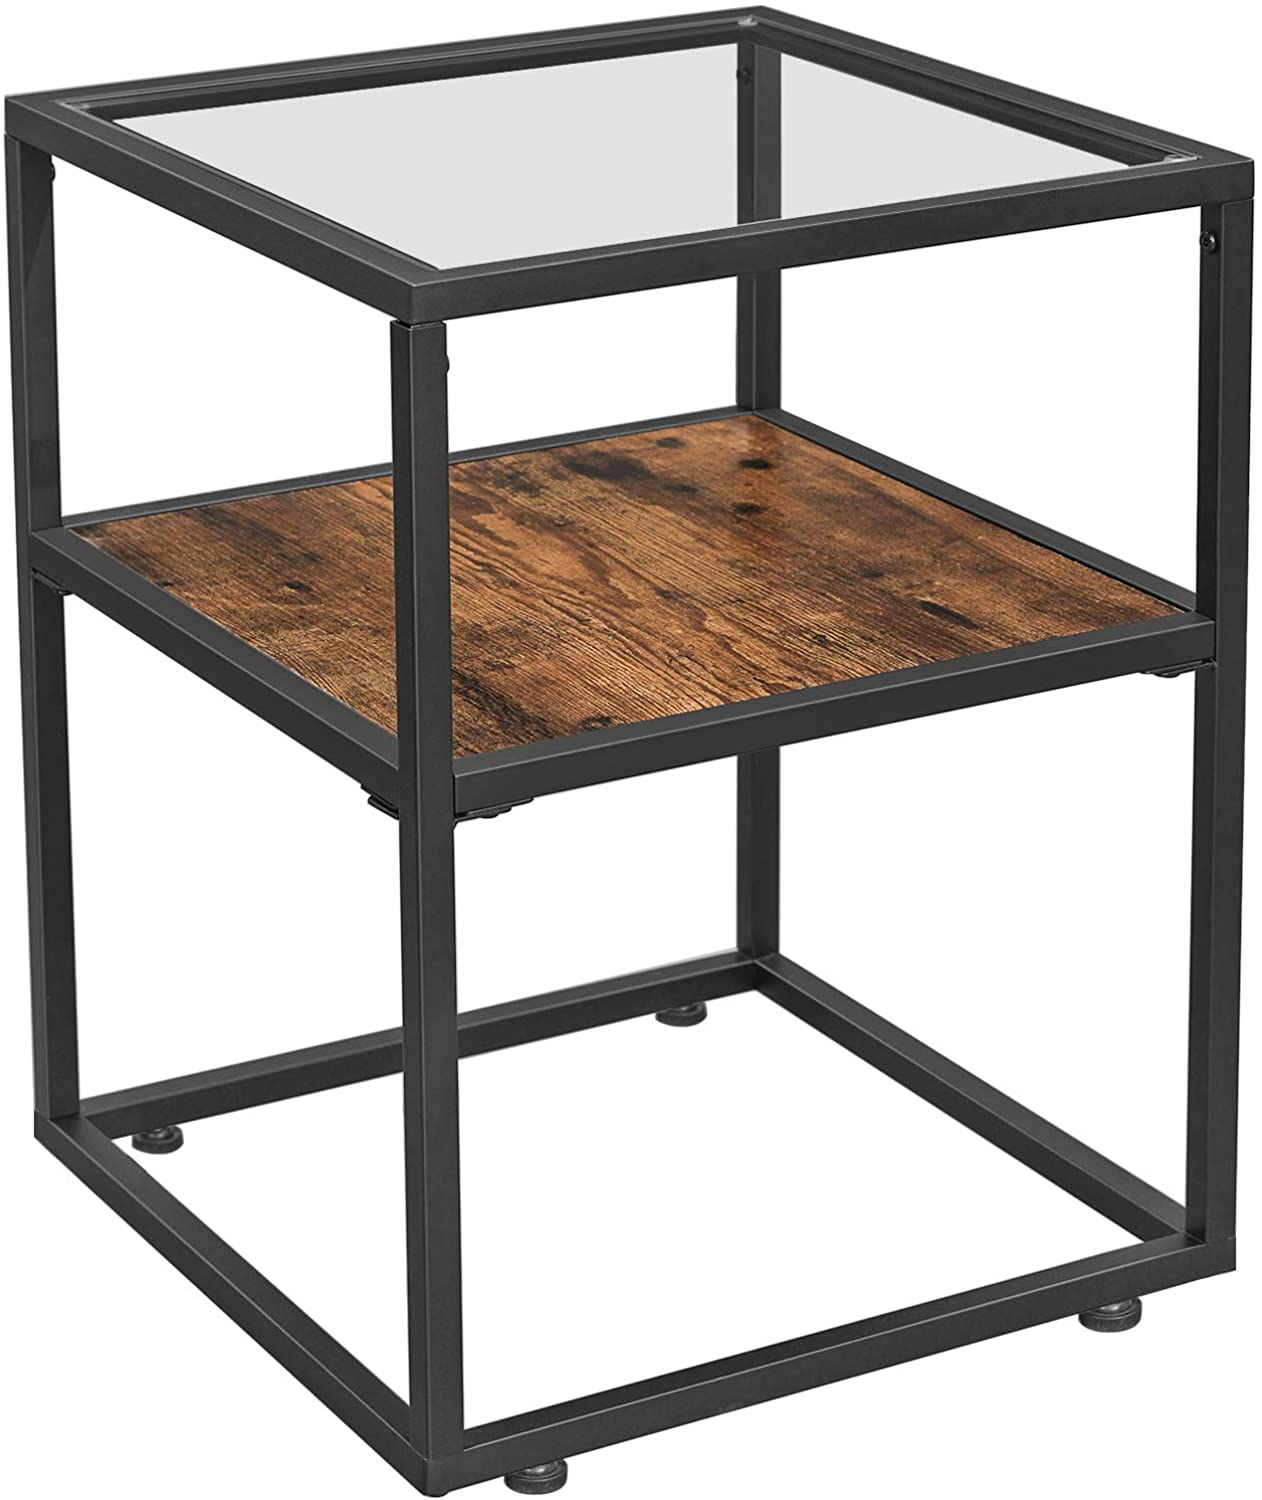 Enjoy fast, free nationwide shipping!  Family owned and operated, HawkinsWoodshop.com is your one stop shop for affordable furniture.  Shop HawkinsWoodshop.com for solid wood & metal modern, traditional, contemporary, industrial, custom, rustic, and farmhouse furniture including our Ryan Glass Tabletop Side Table with Storage Shelf.